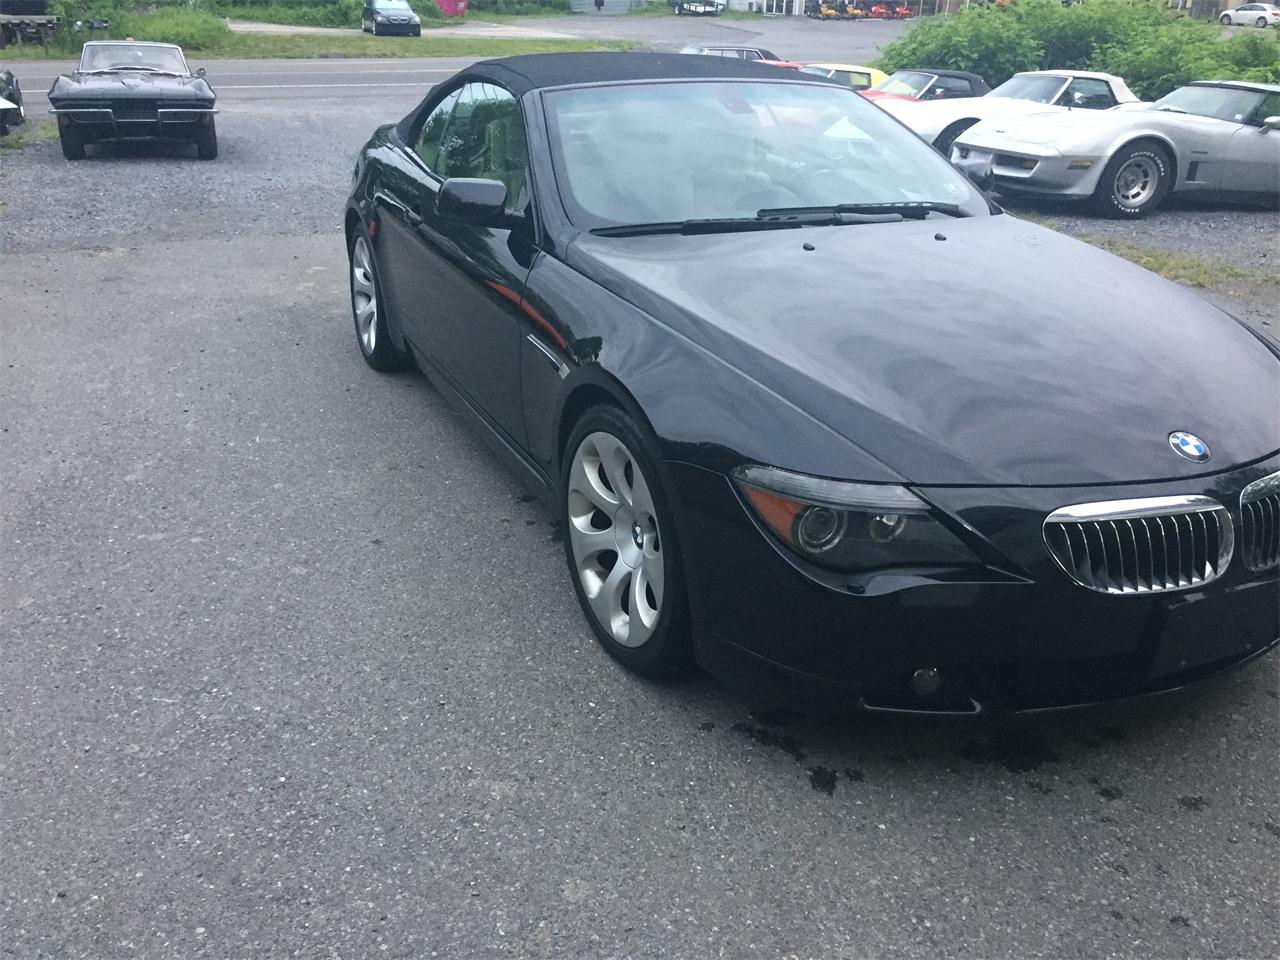 2005 BMW 645ci (CC-1254501) for sale in Mount Union, Pennsylvania